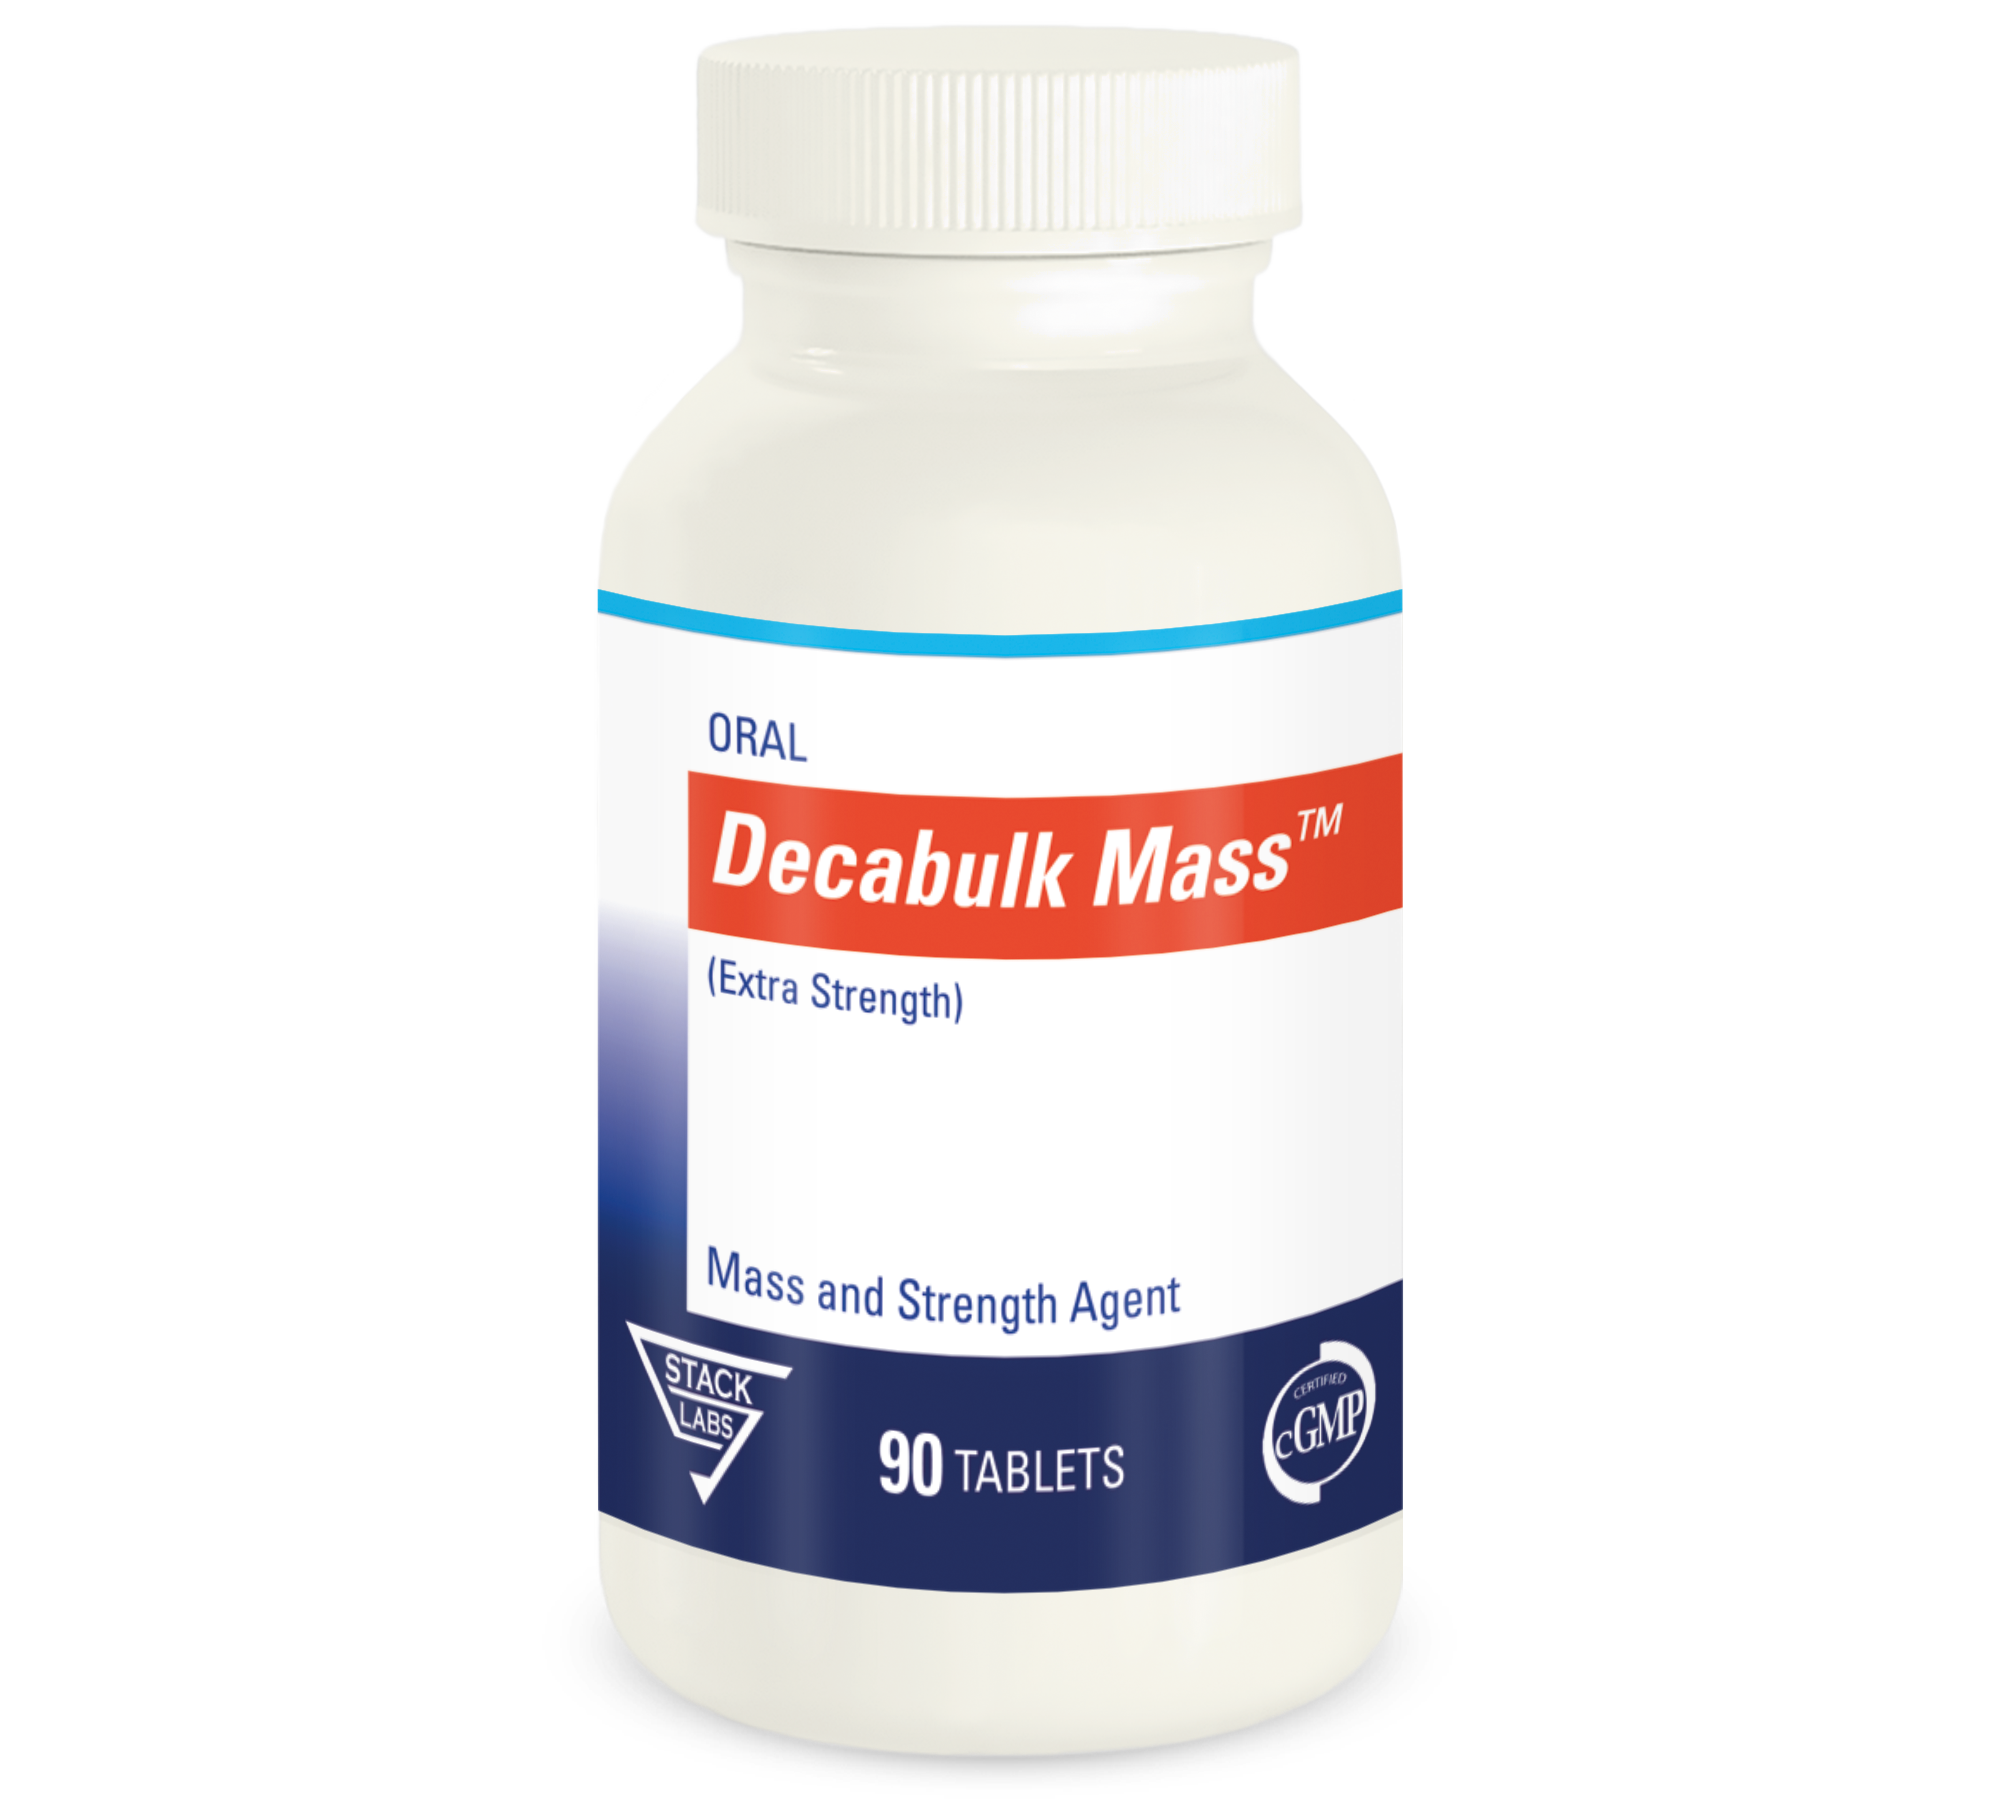 Buy Decabulk Mass for Muscle Mass and Strength Best muscle building supplements Gain muscle